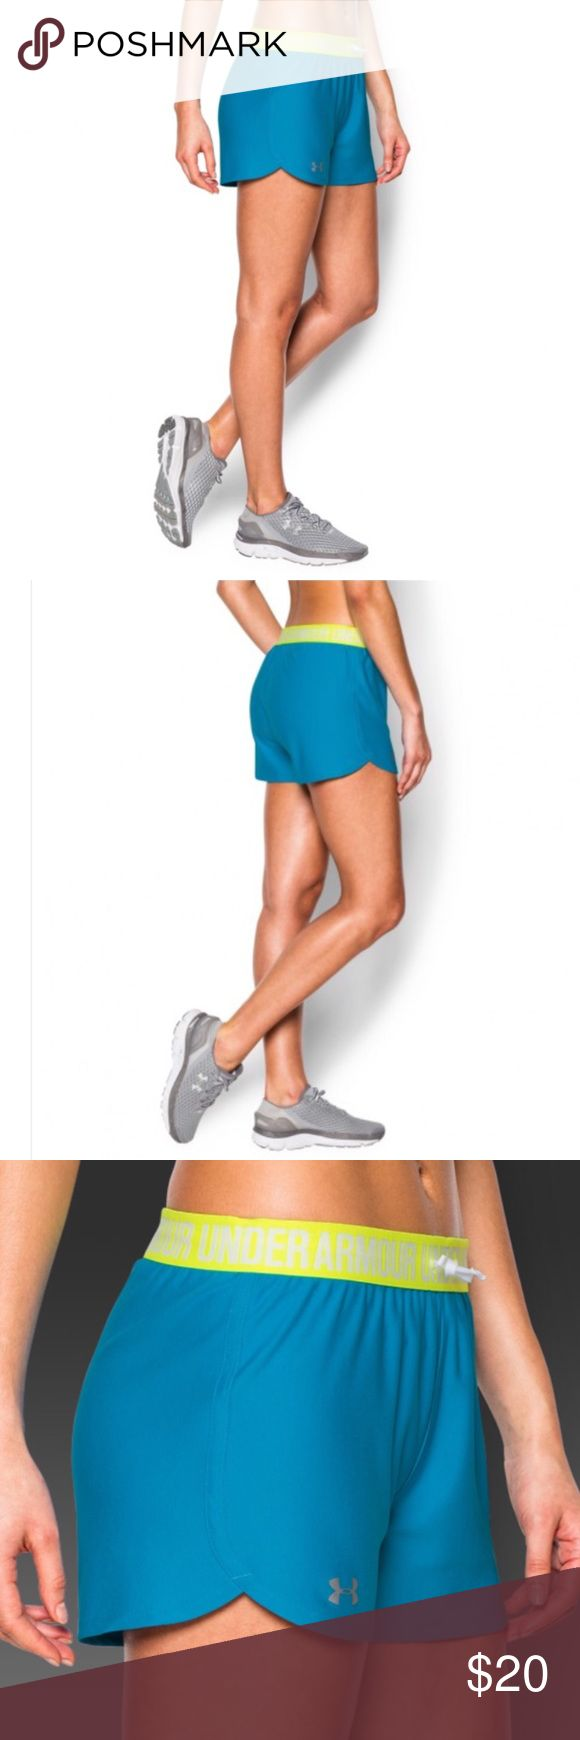 Under Armour Shorts Under Armour Shorts -new with tags -XS -perfect for track and gym -price firm Under Armour Shorts